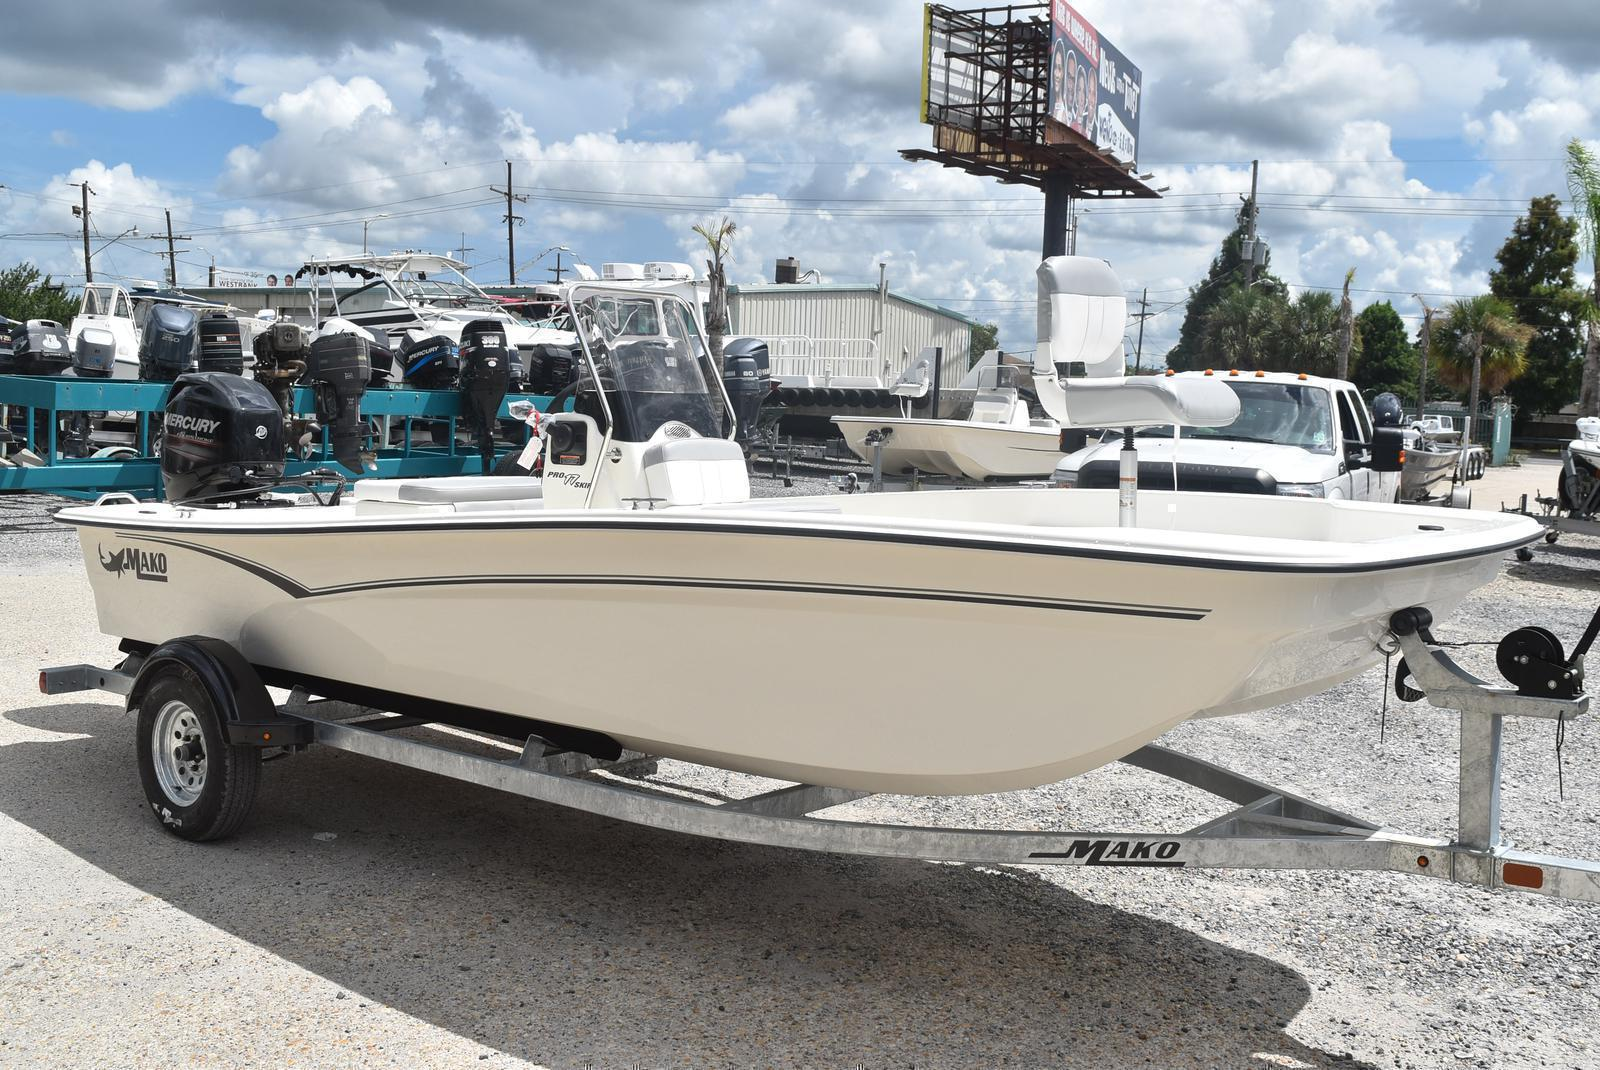 2020 Mako boat for sale, model of the boat is Pro Skiff 17, 75 ELPT & Image # 668 of 702